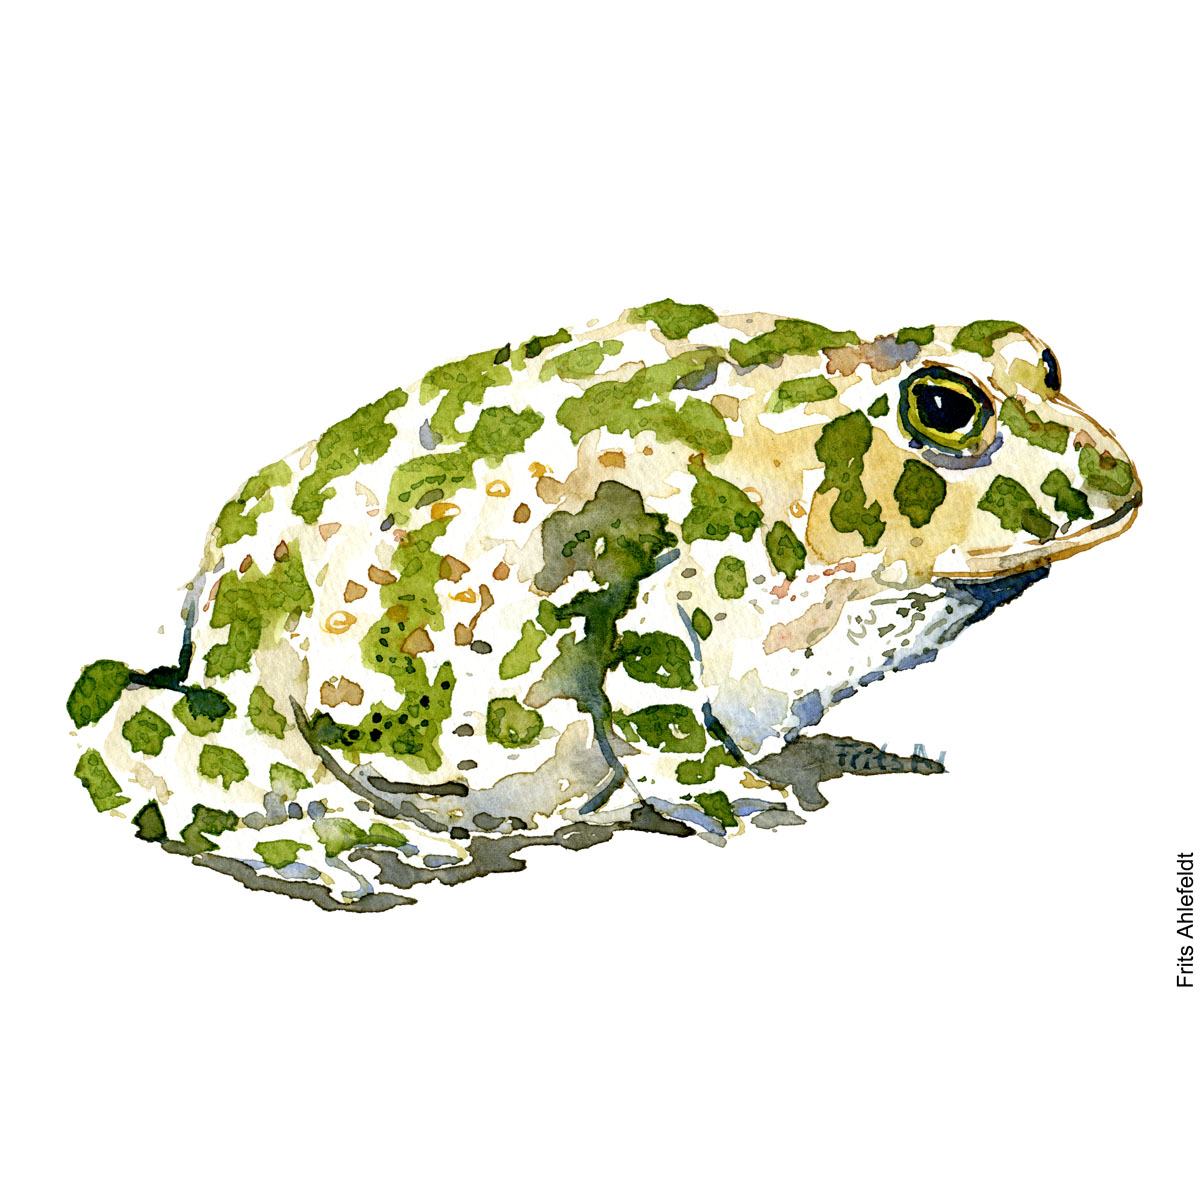 Green toad sideview watercolor illustration handmade by Frits Ahlefeldt